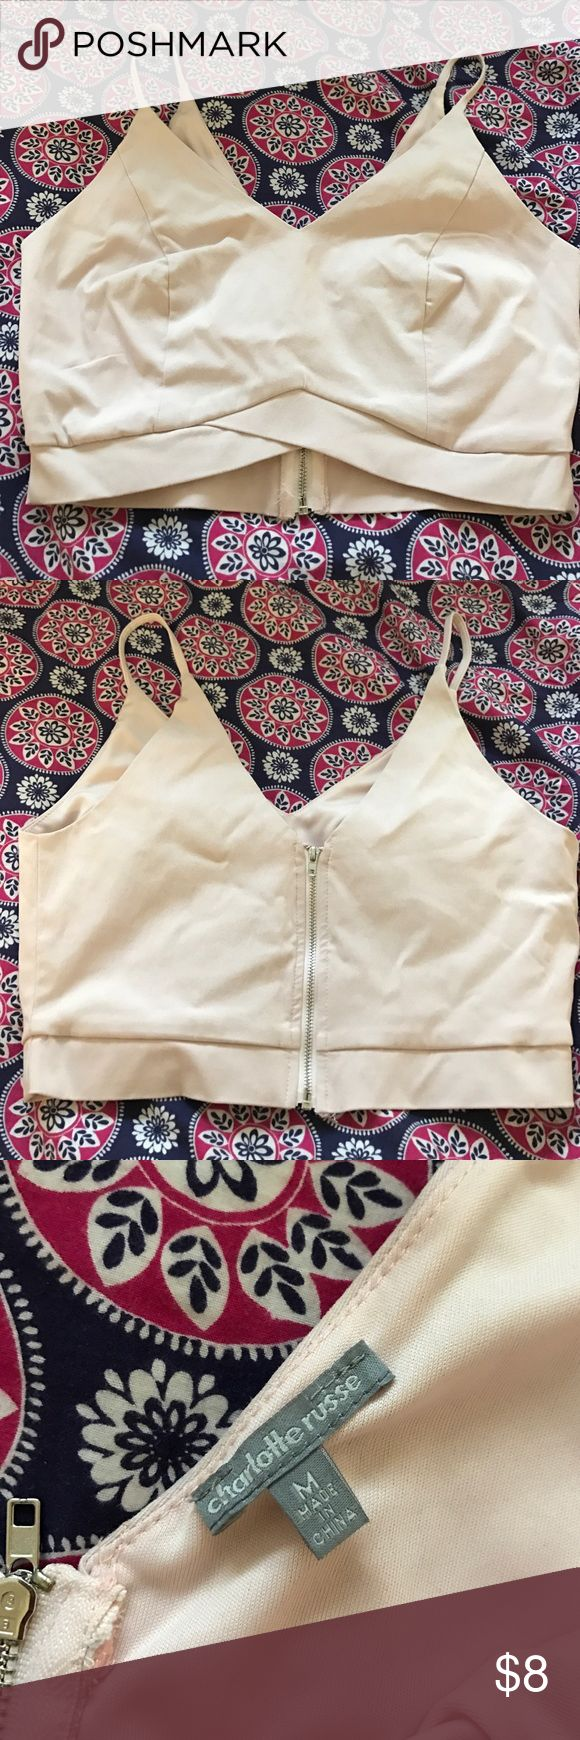 Super Cute Pink Charolette Rouse crop top! Charolette Rouse light pink women's crop top. Only been worn once in great condition! Asking $8 but will take best offer! :) Charlotte Russe Tops Crop Tops